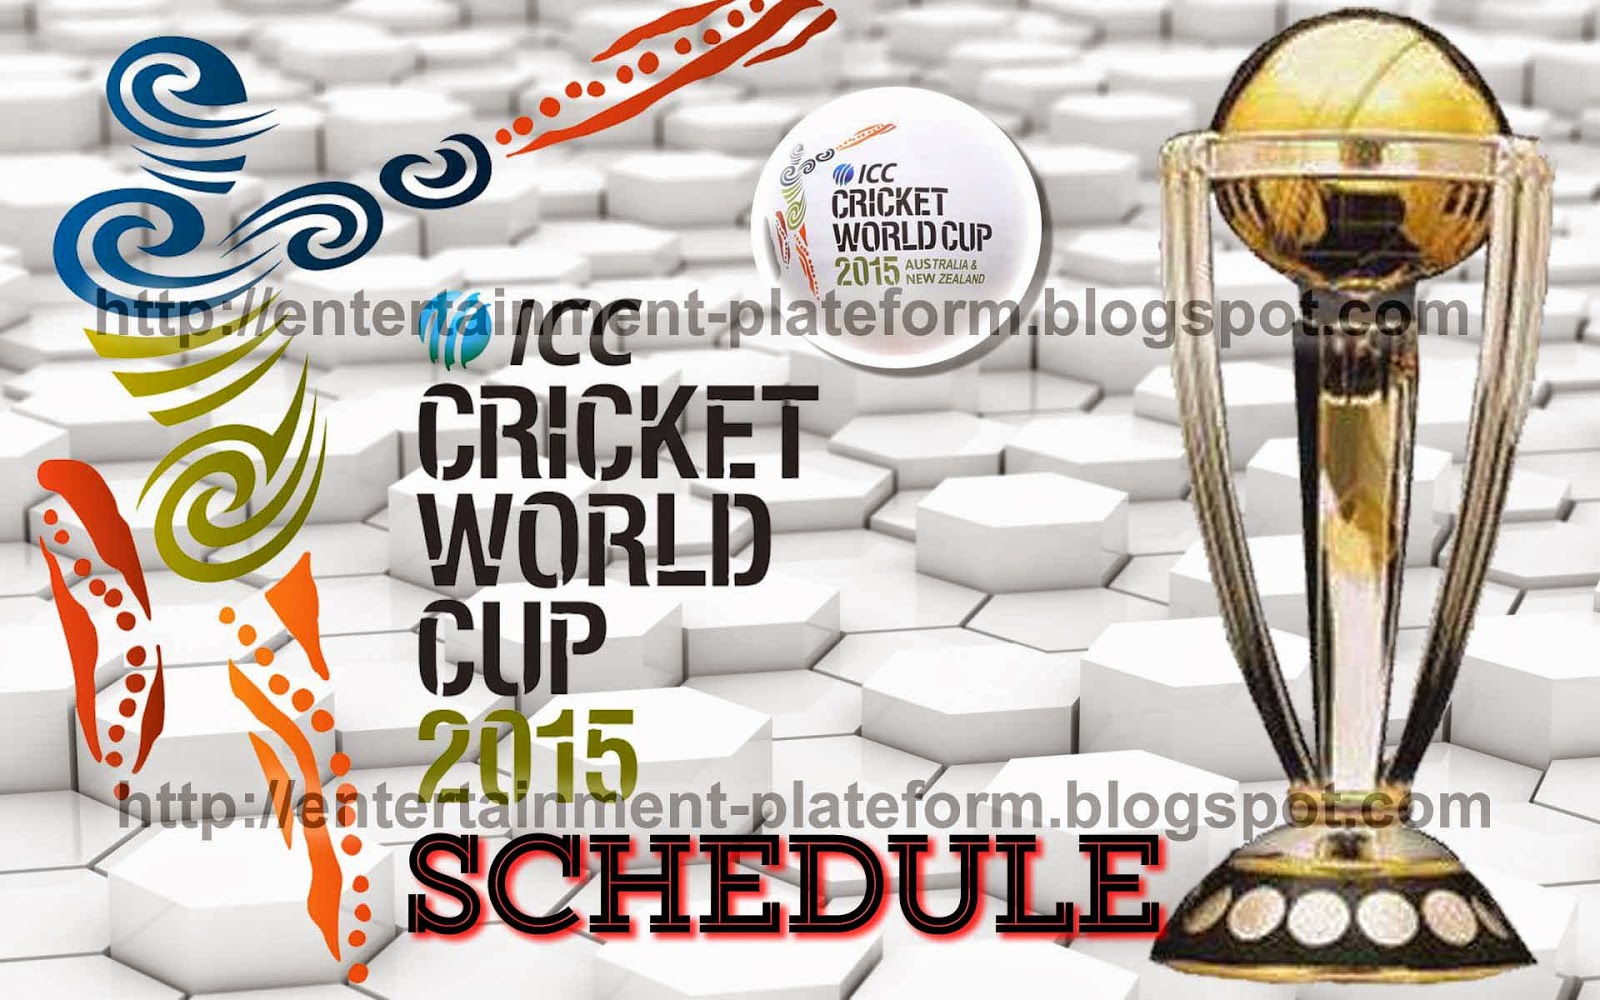 Schedule-Fixture-of-World-Cup-2015